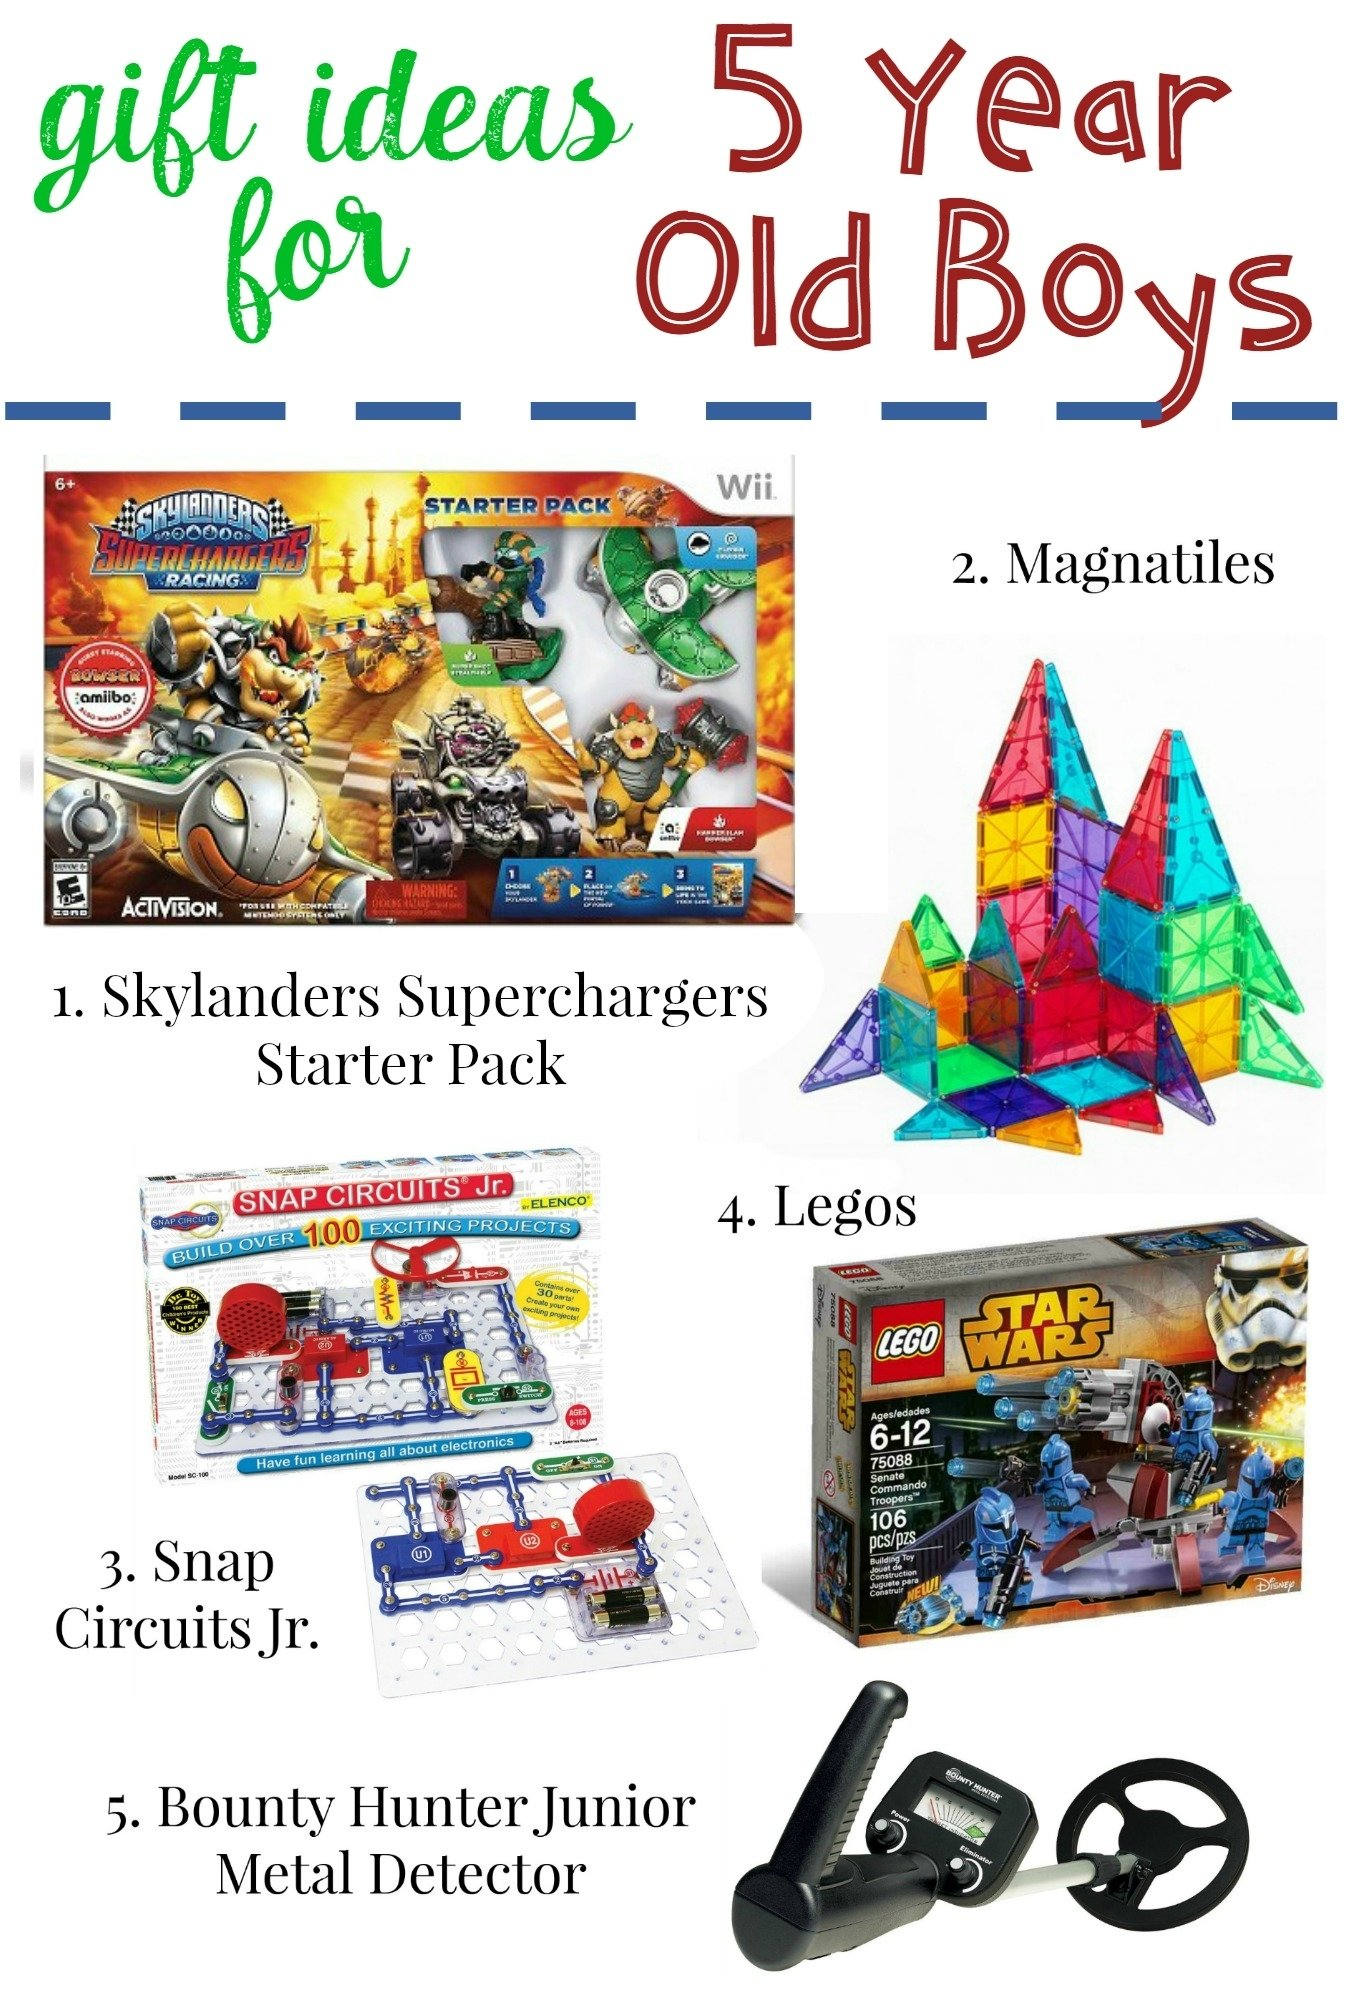 10 Stunning Gift Ideas For 5 Year Old Boy gifts for 5 year old boys 9 2020